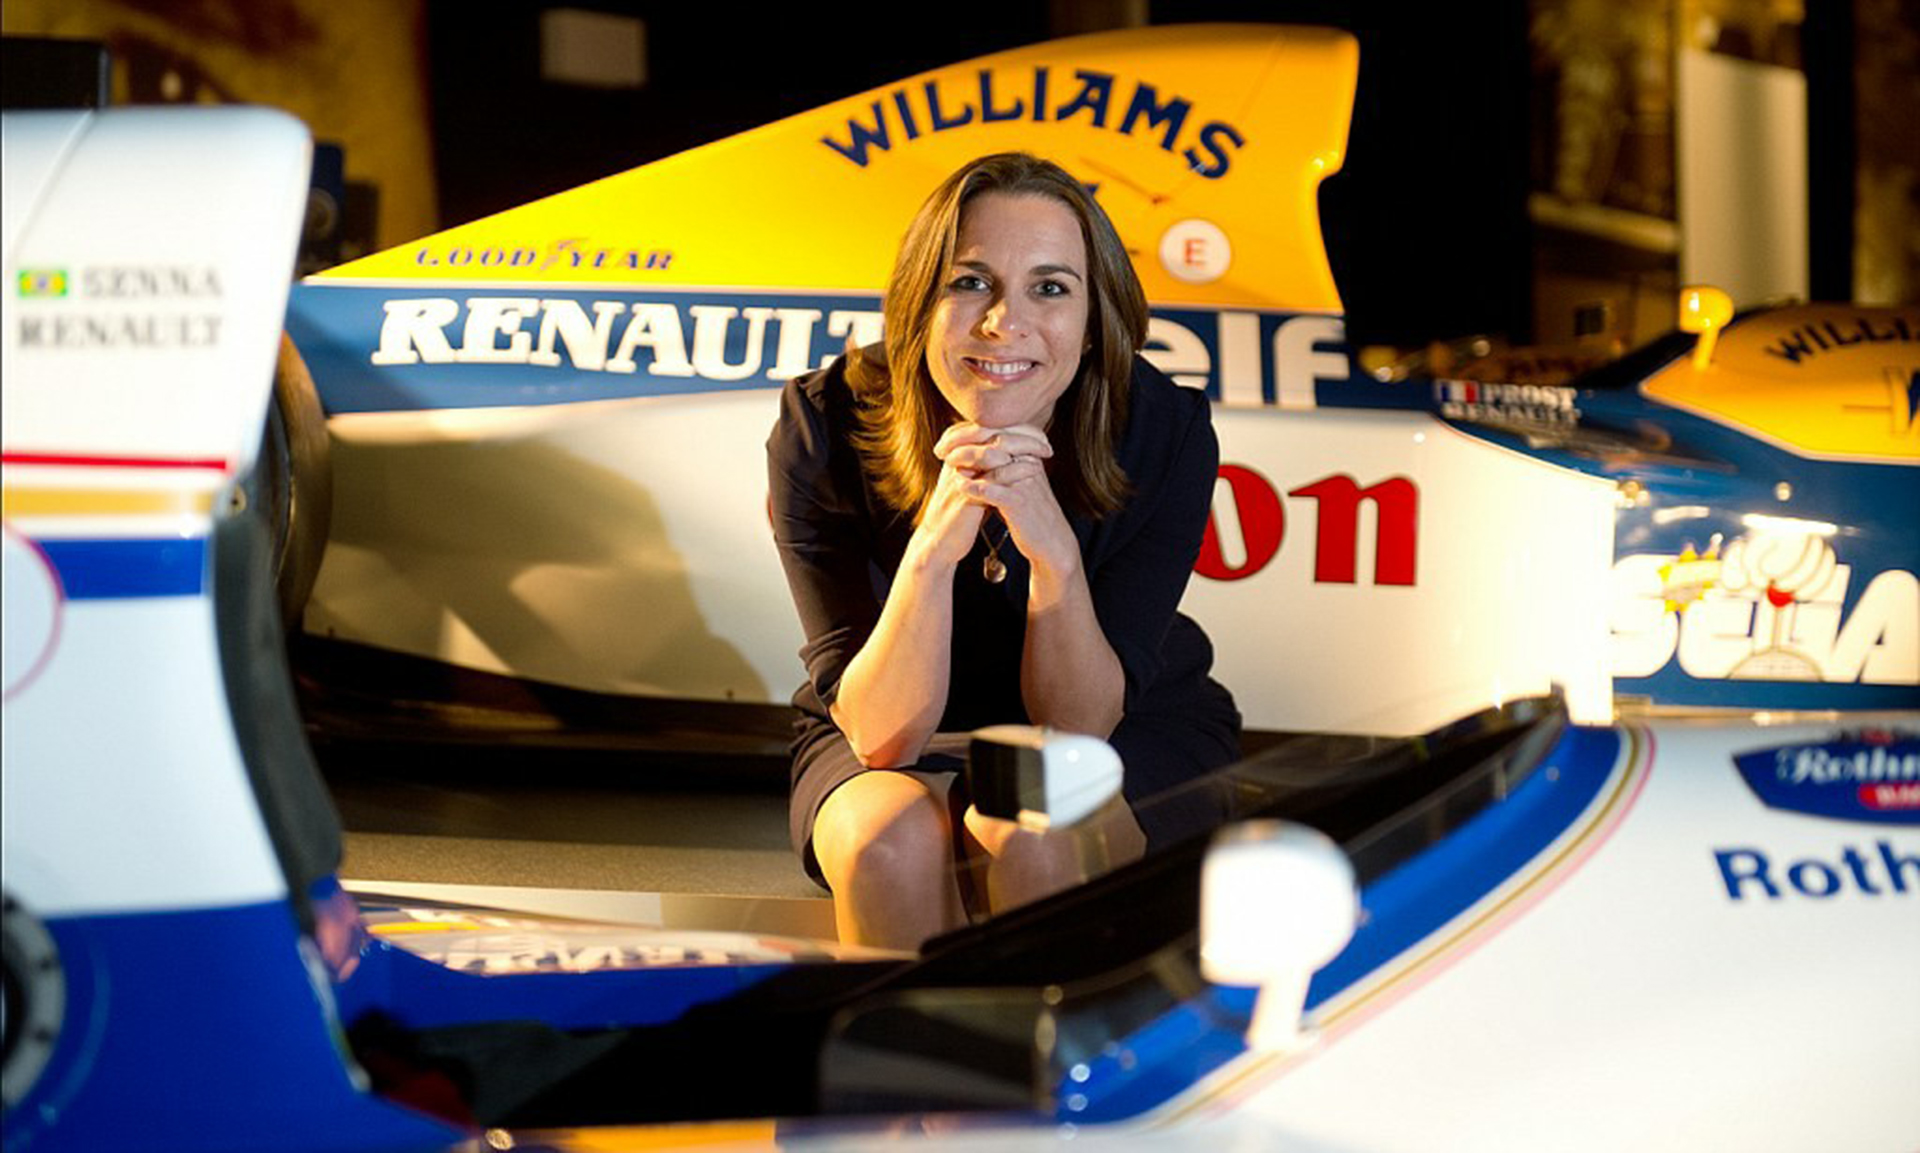 automovilismo - CLAIRE WILLIAMS